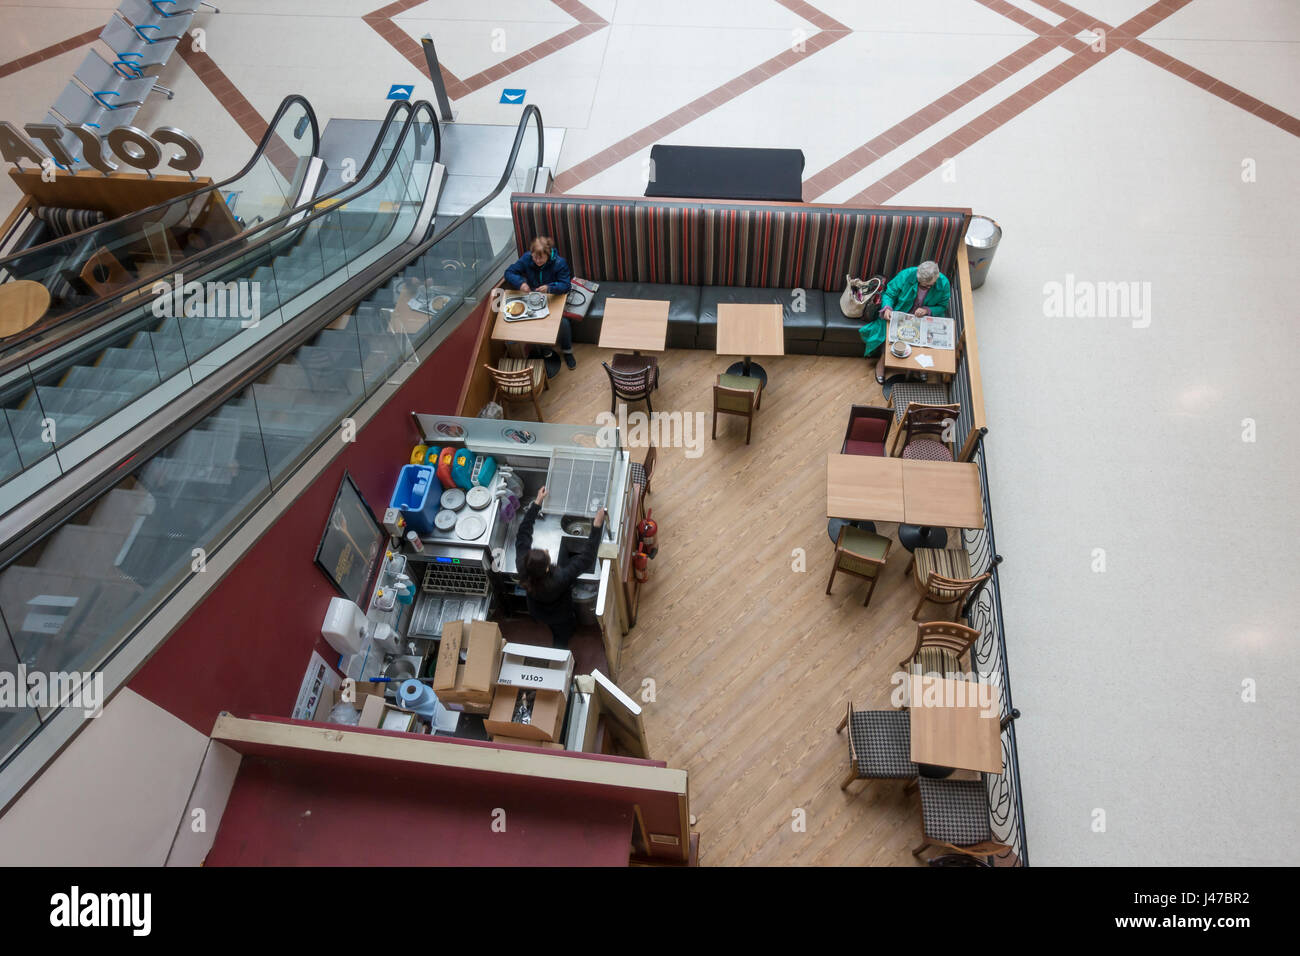 downward-view-on-coffee-shop-area-J47BR2